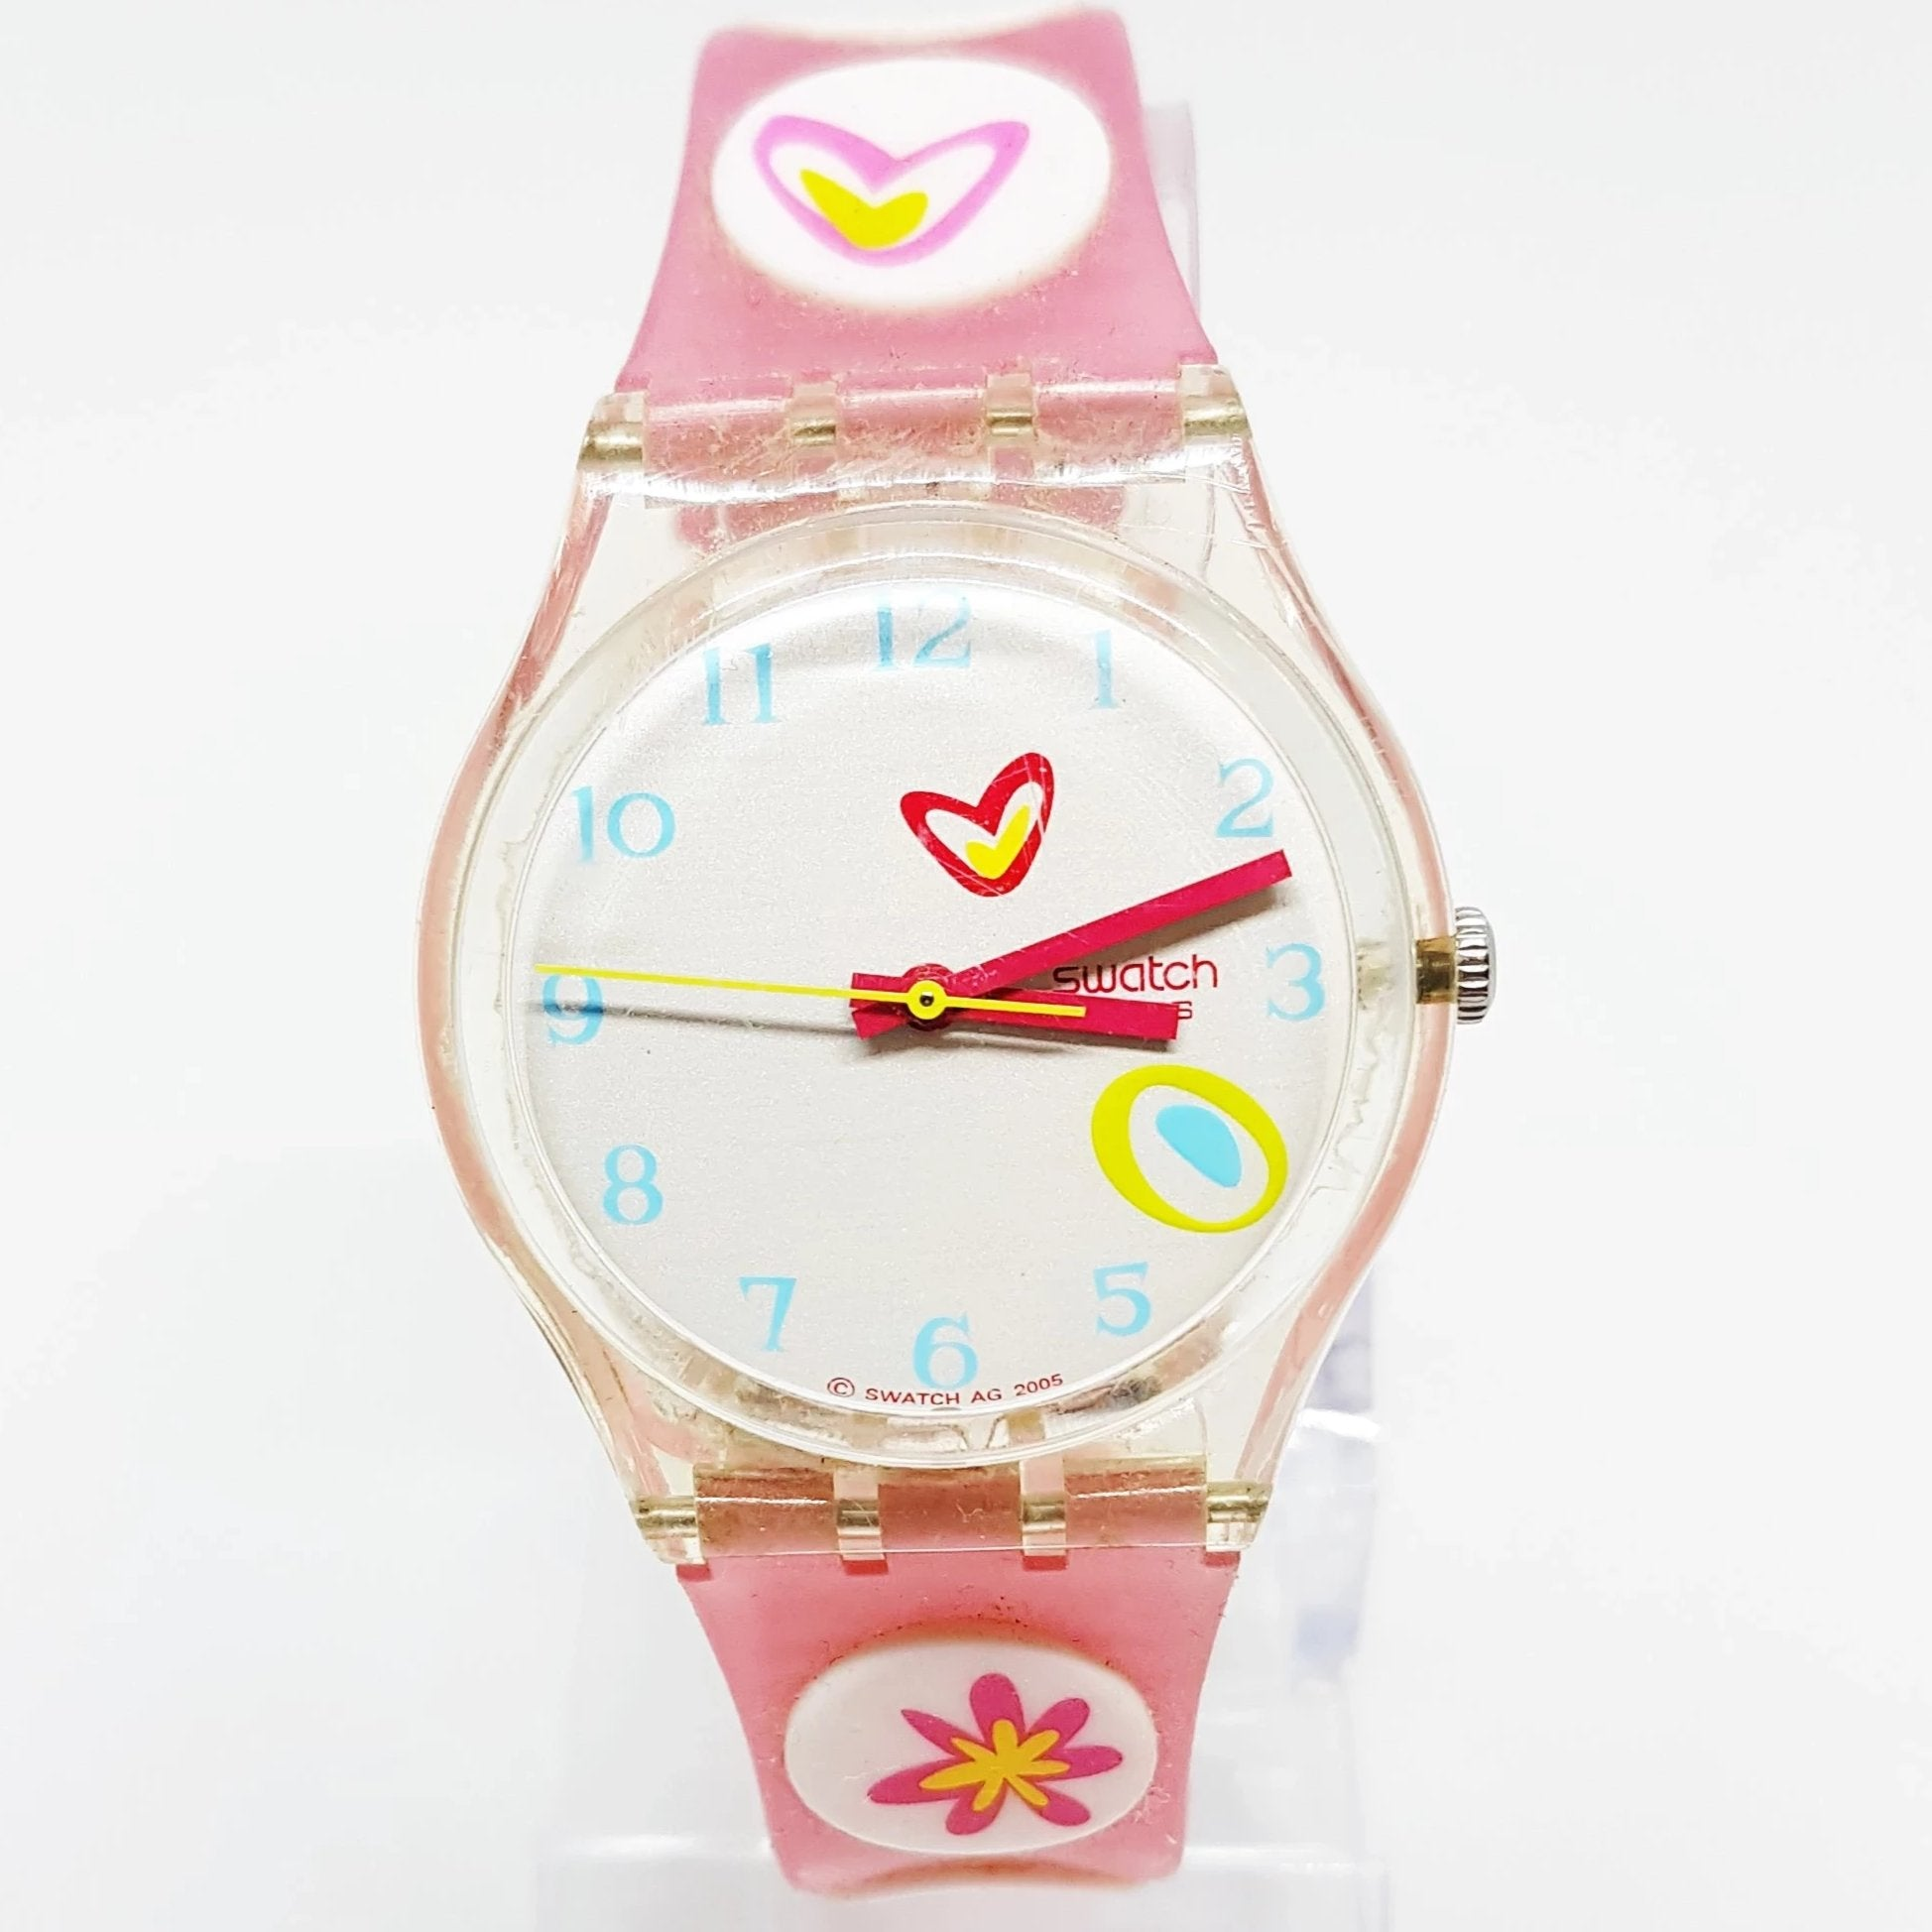 2005 Pink Candy Ge177 Swatch Watch Vintage Swatch Watch